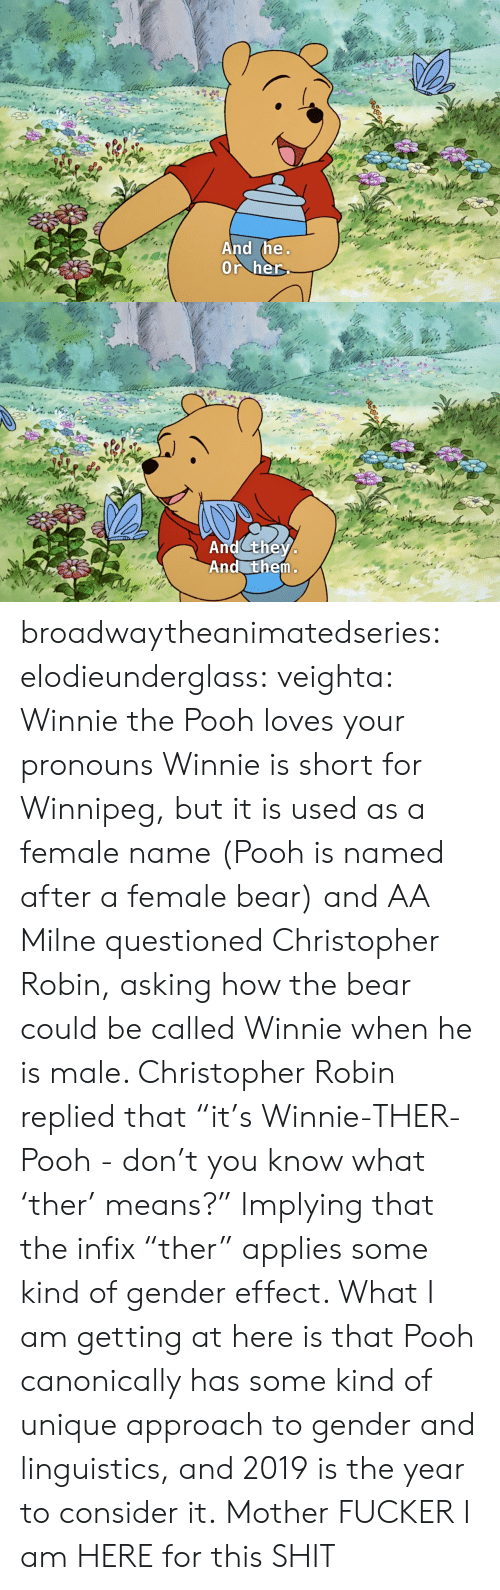 """Shit, Tumblr, and Winnie the Pooh: And the  Or her   And they  And them broadwaytheanimatedseries: elodieunderglass:  veighta: Winnie the Pooh loves your pronouns  Winnie is short for Winnipeg, but it is used as a female name (Pooh is named after a female bear) and AA Milne questioned Christopher Robin, asking how the bear could be called Winnie when he is male. Christopher Robin replied that """"it's Winnie-THER-Pooh - don't you know what 'ther' means?"""" Implying that the infix """"ther"""" applies some kind of gender effect.  What I am getting at here is that Pooh canonically has some kind of unique approach to gender and linguistics, and 2019 is the year to consider it.   Mother FUCKER I am HERE for this SHIT"""